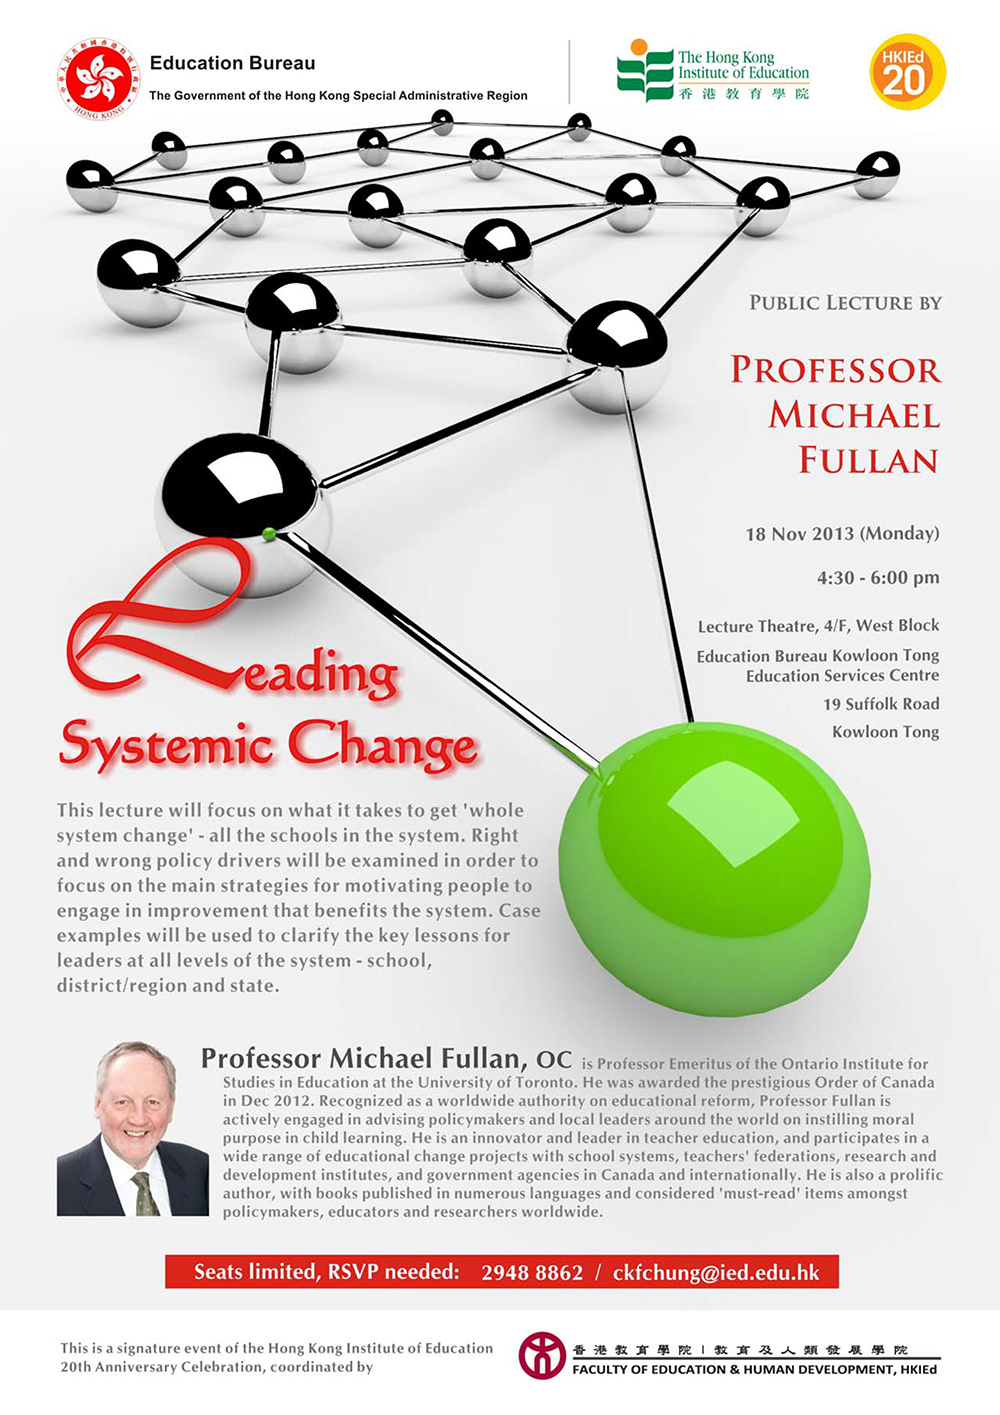 Public Lecture by Prof Michael Fullan - Leading Systemic Change